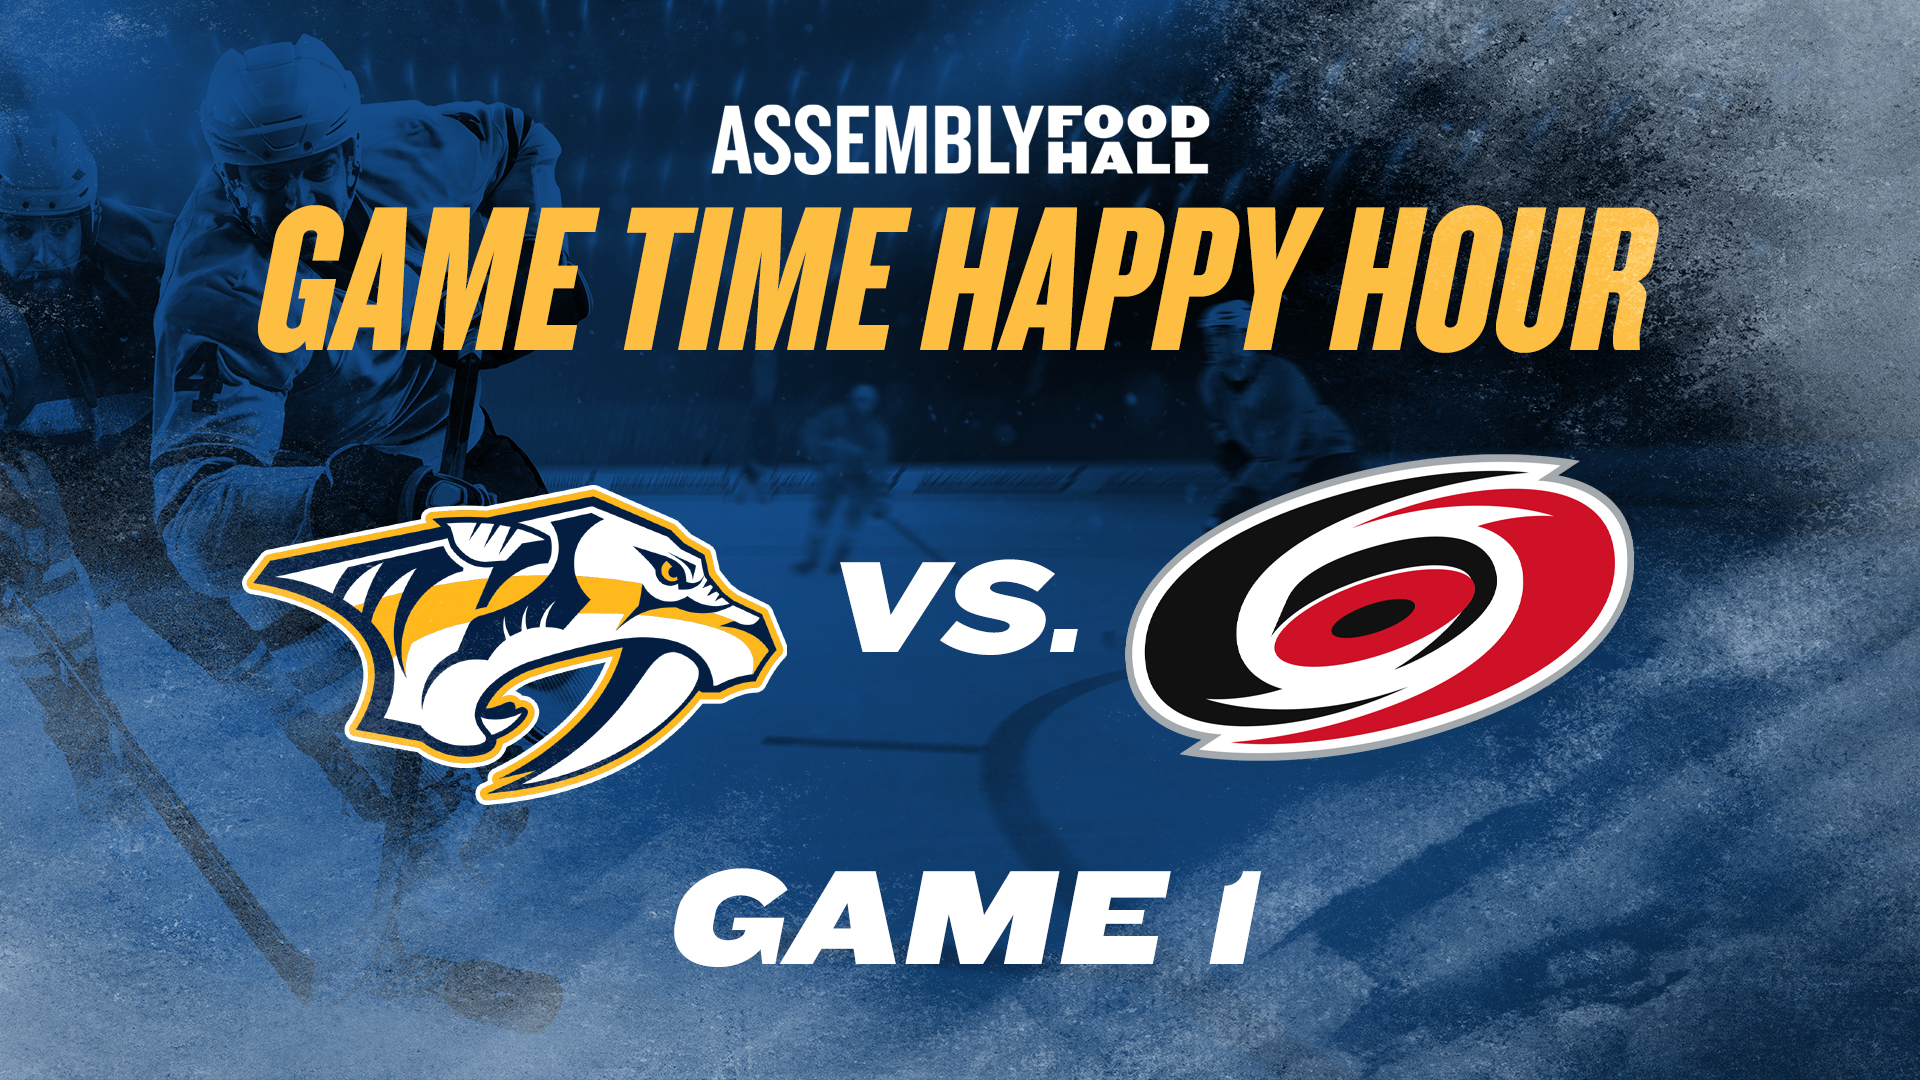 Promo image of Predators v. Hurricanes Game Time Happy Hour | Game 1